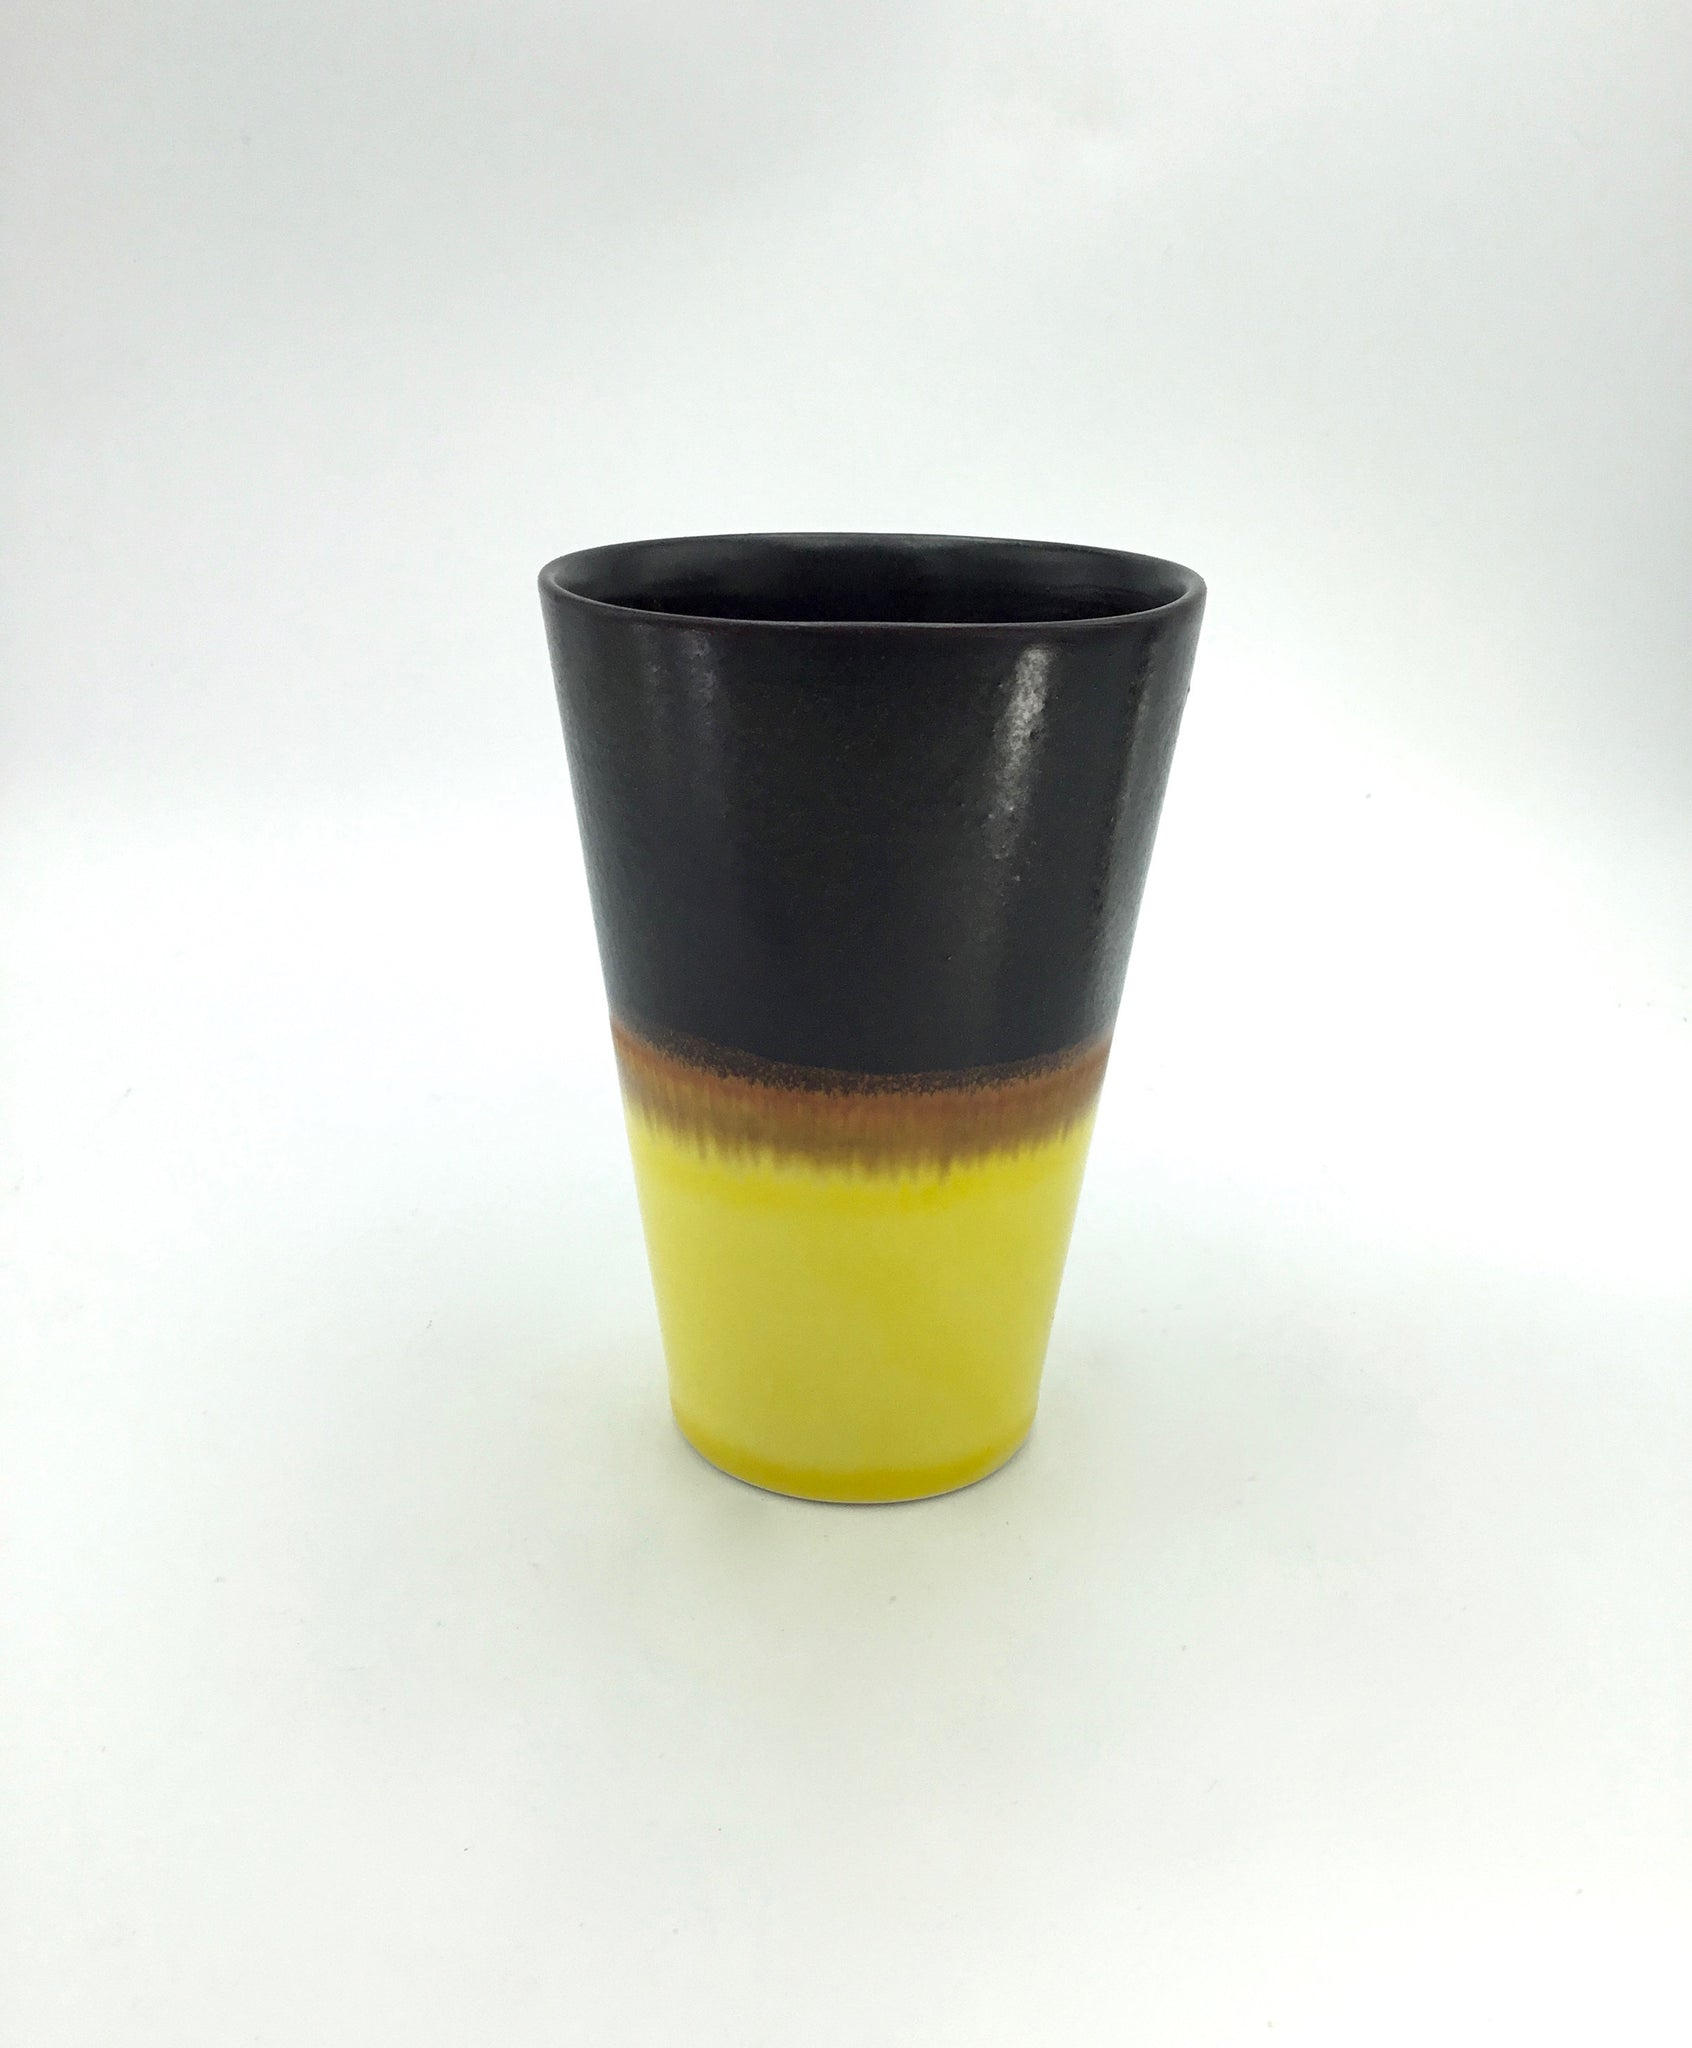 SGW Lab Chocolate & Lemon Yellow Tumbler